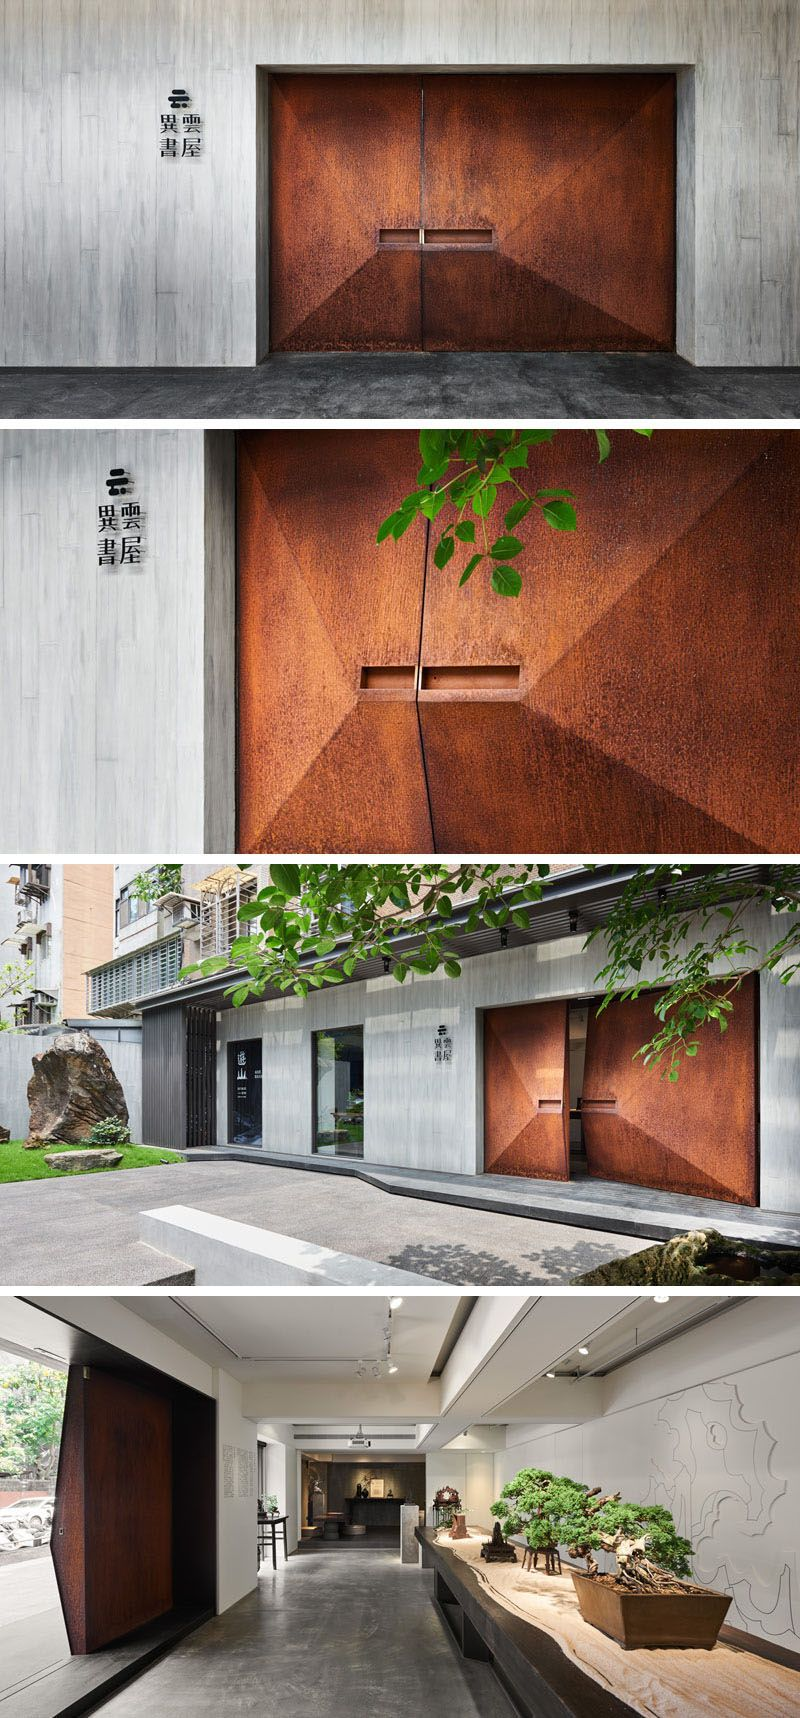 Geometrically shaped weathered steel doors welcome visitors to an